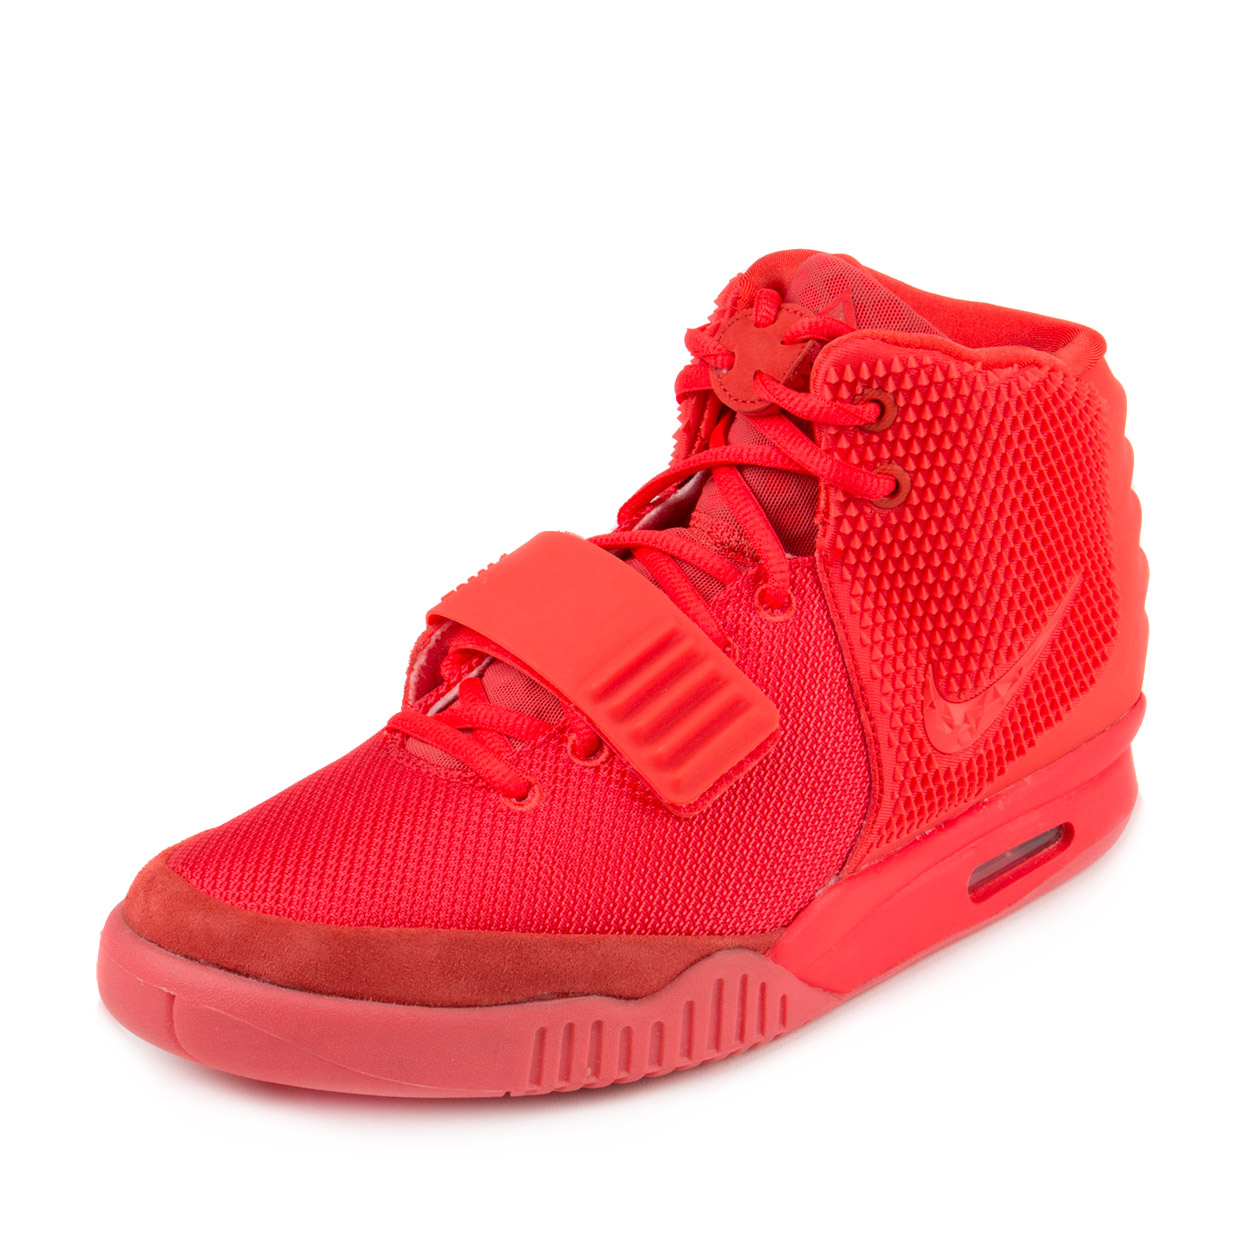 size 40 2a5a8 6130c ... cheapest nike nike mens air yeezy 2 sp red october red 508214 660  walmart a76a5 c9324